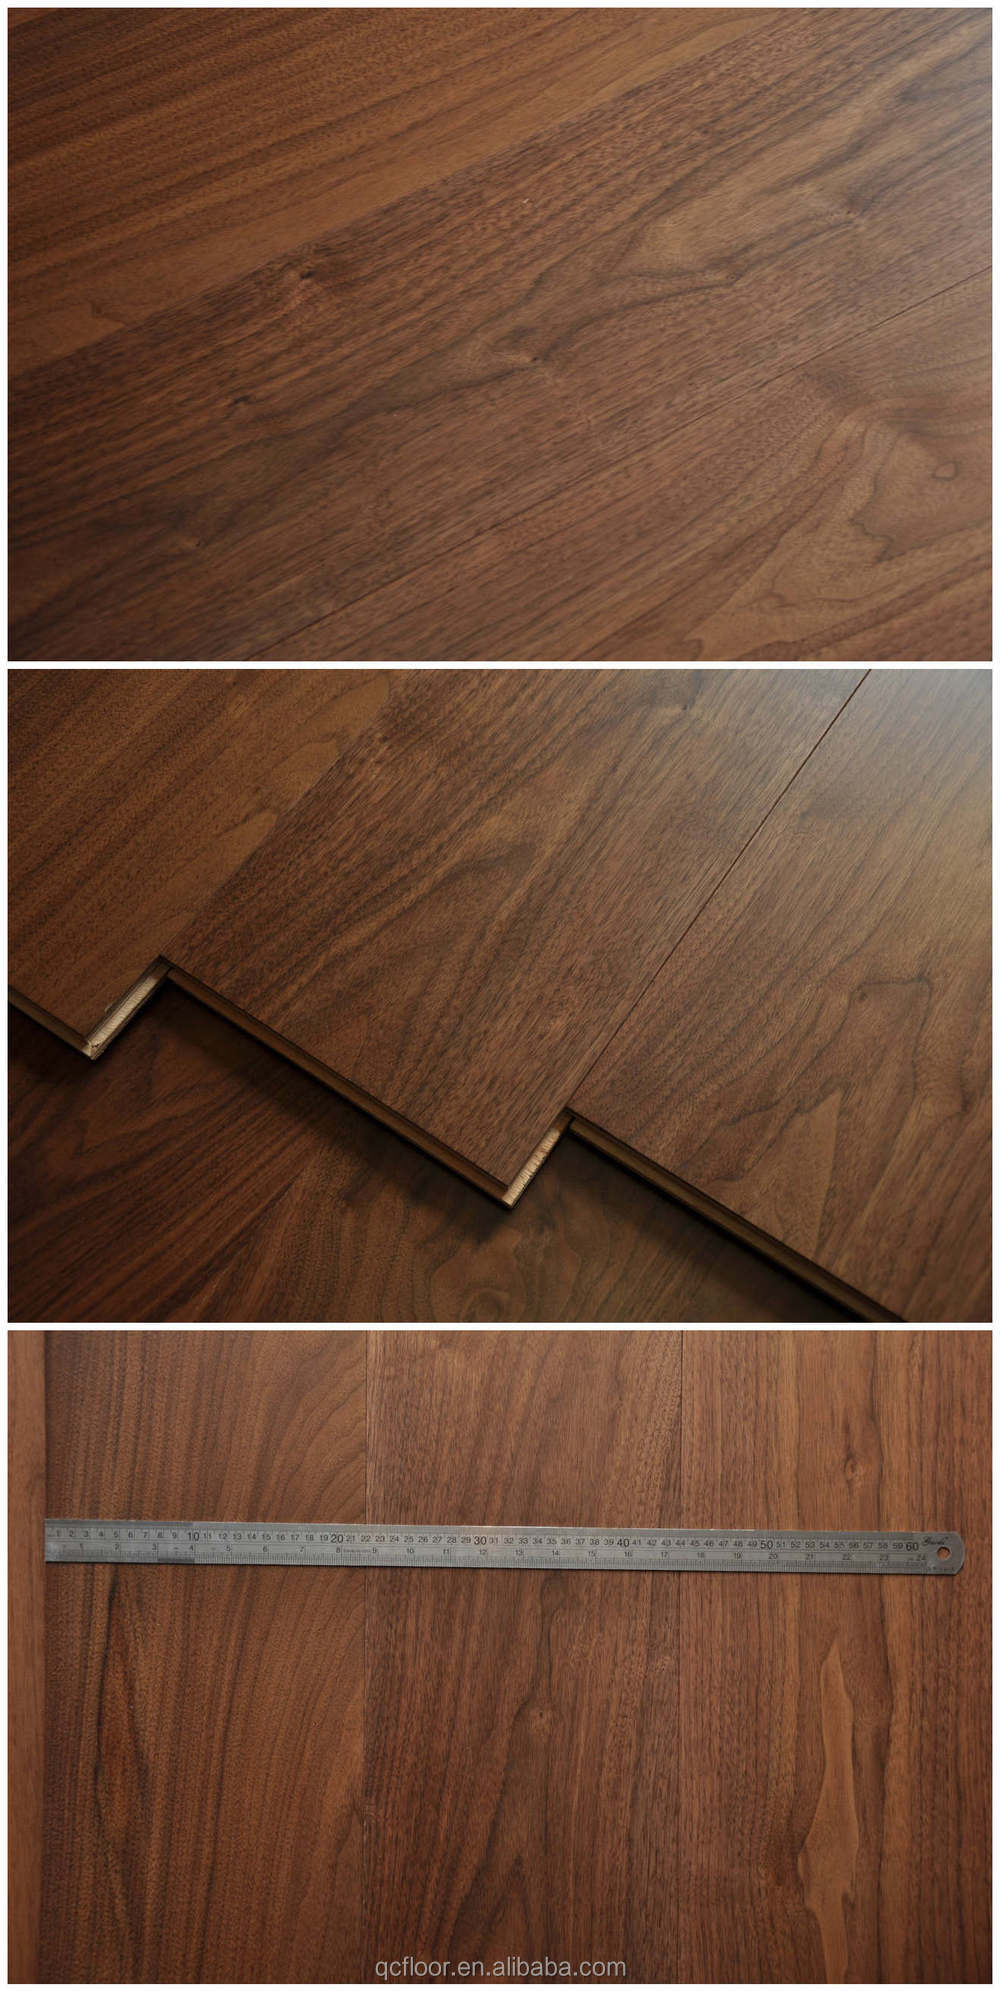 Big Plank Walnut Floor Tile Wood Price Parquet Wood